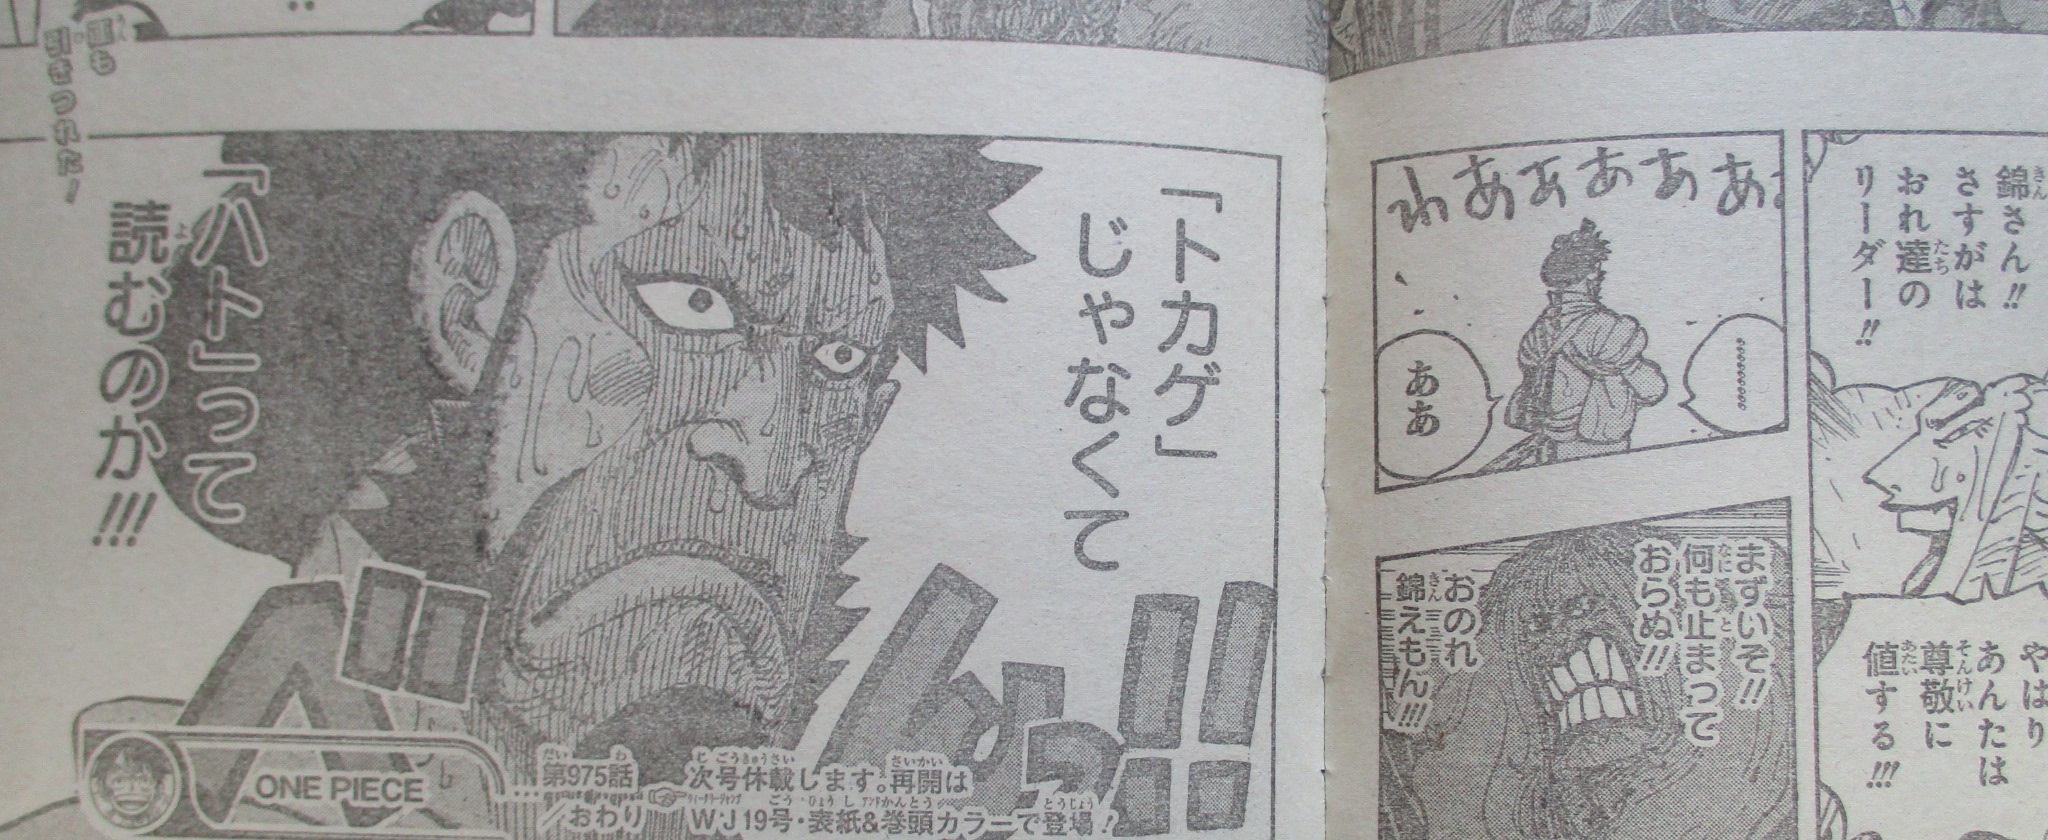 One Piece Spoilers 975 02